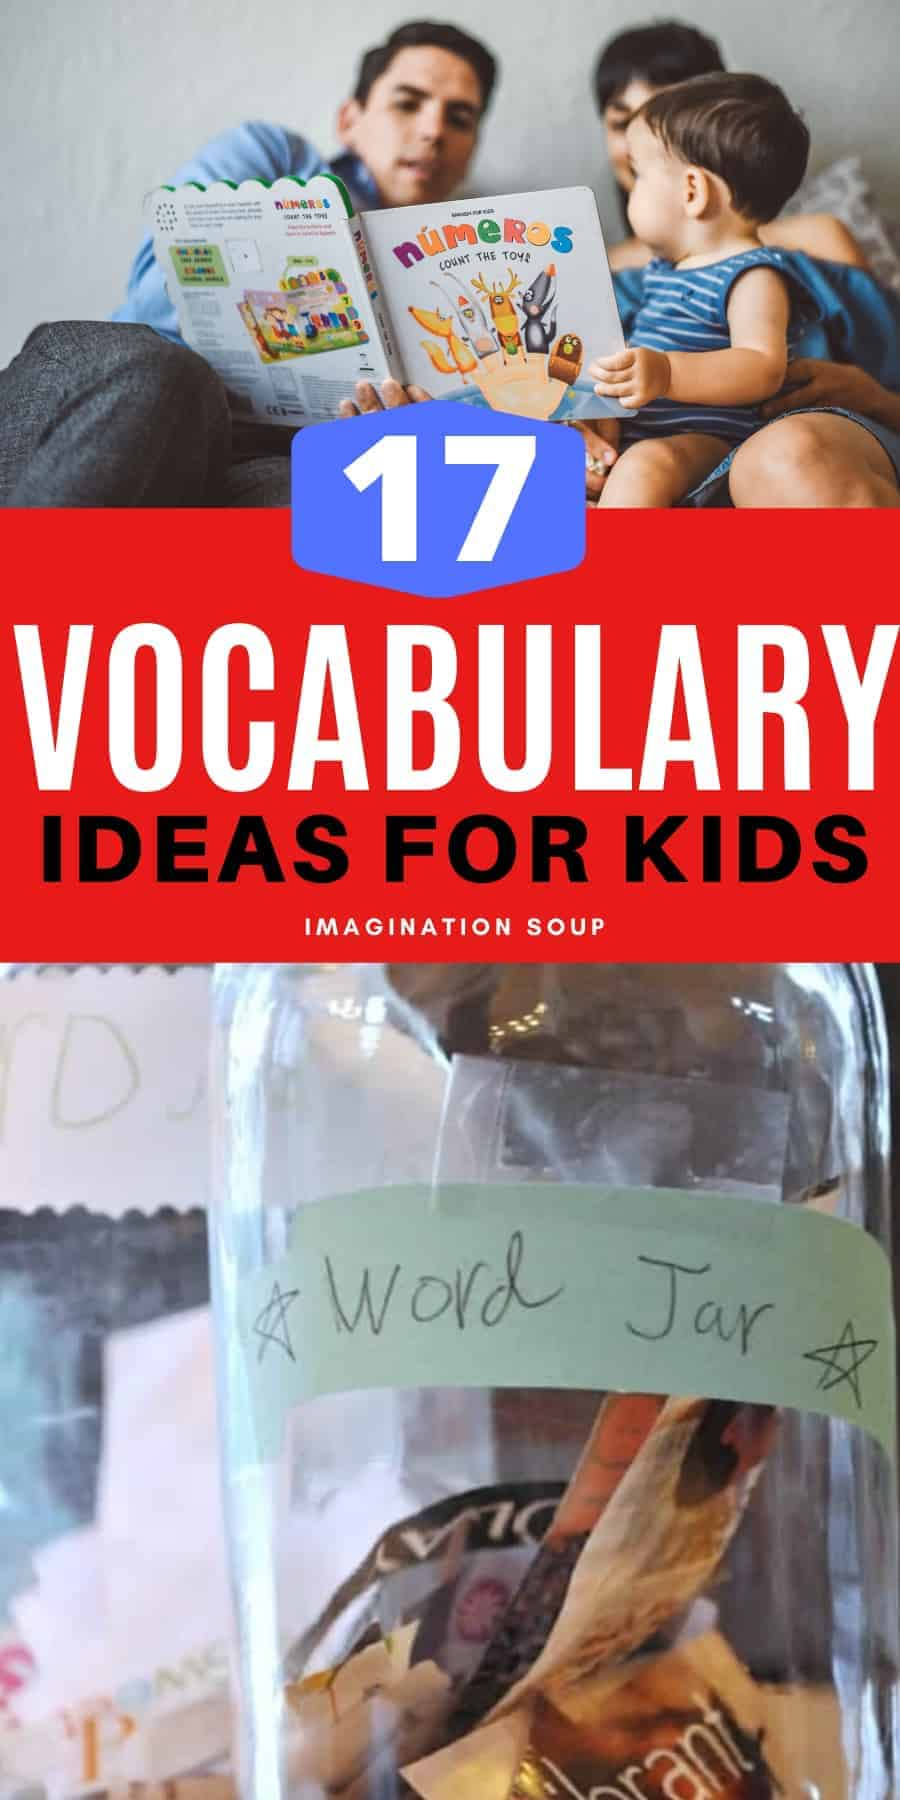 17 vocabulary ideas for kids to learn new words